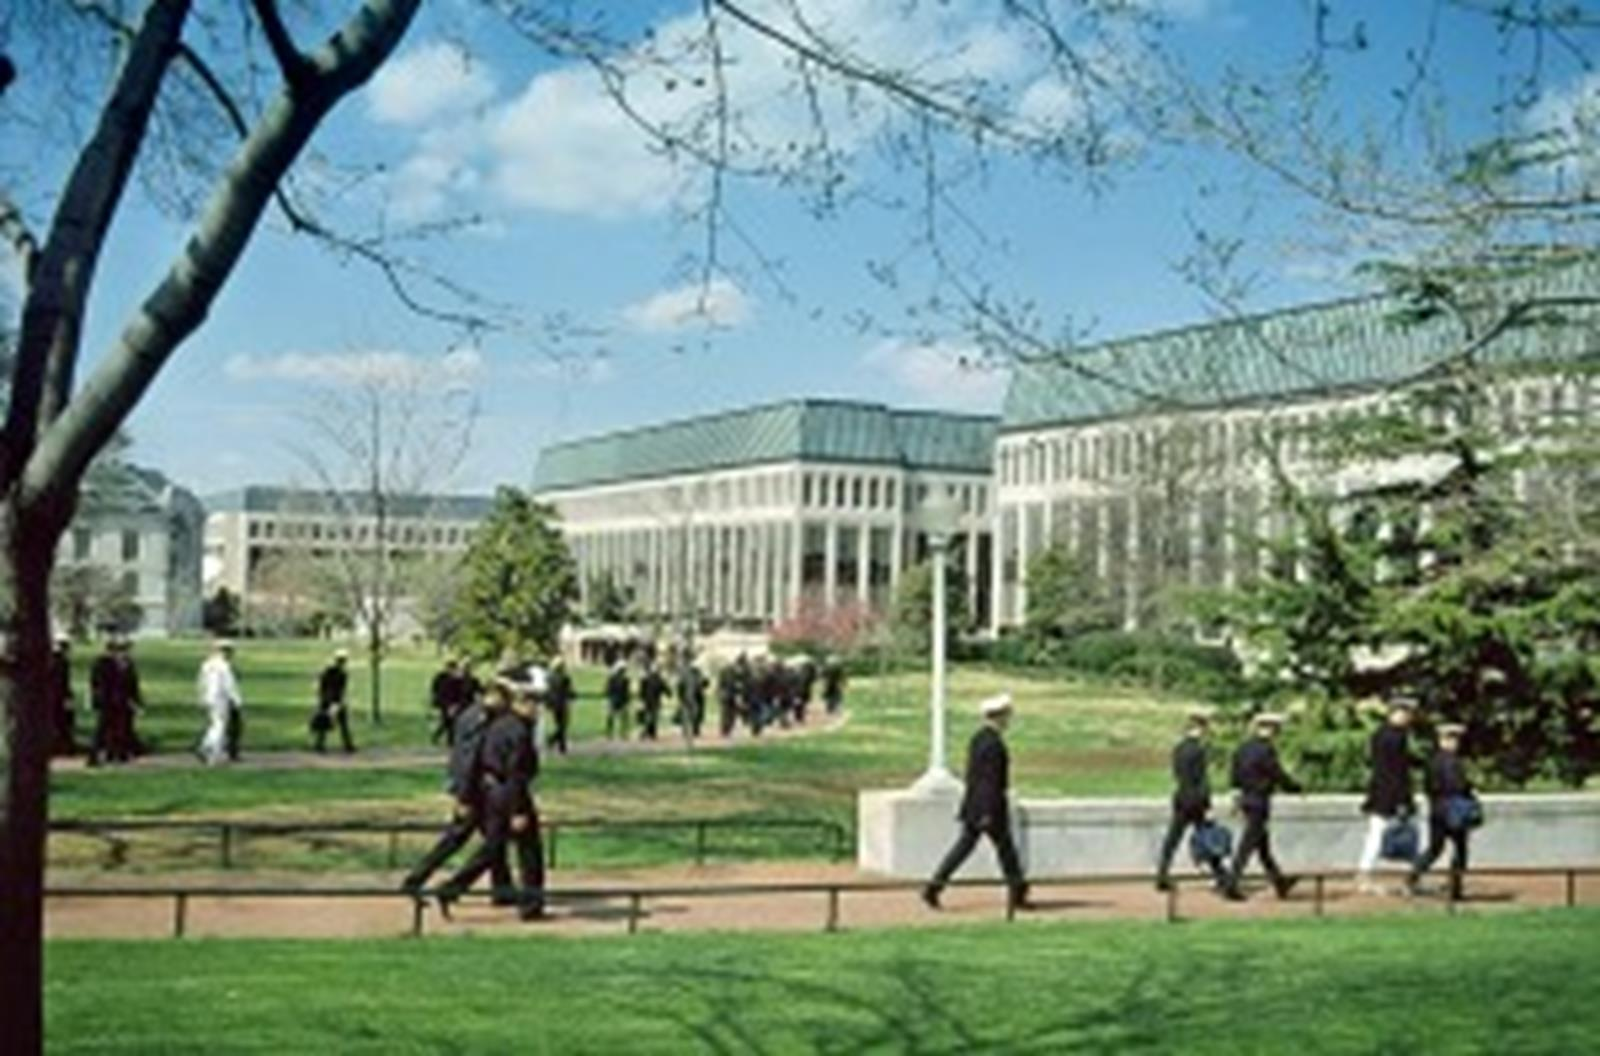 The U.S. Naval Academy Campus